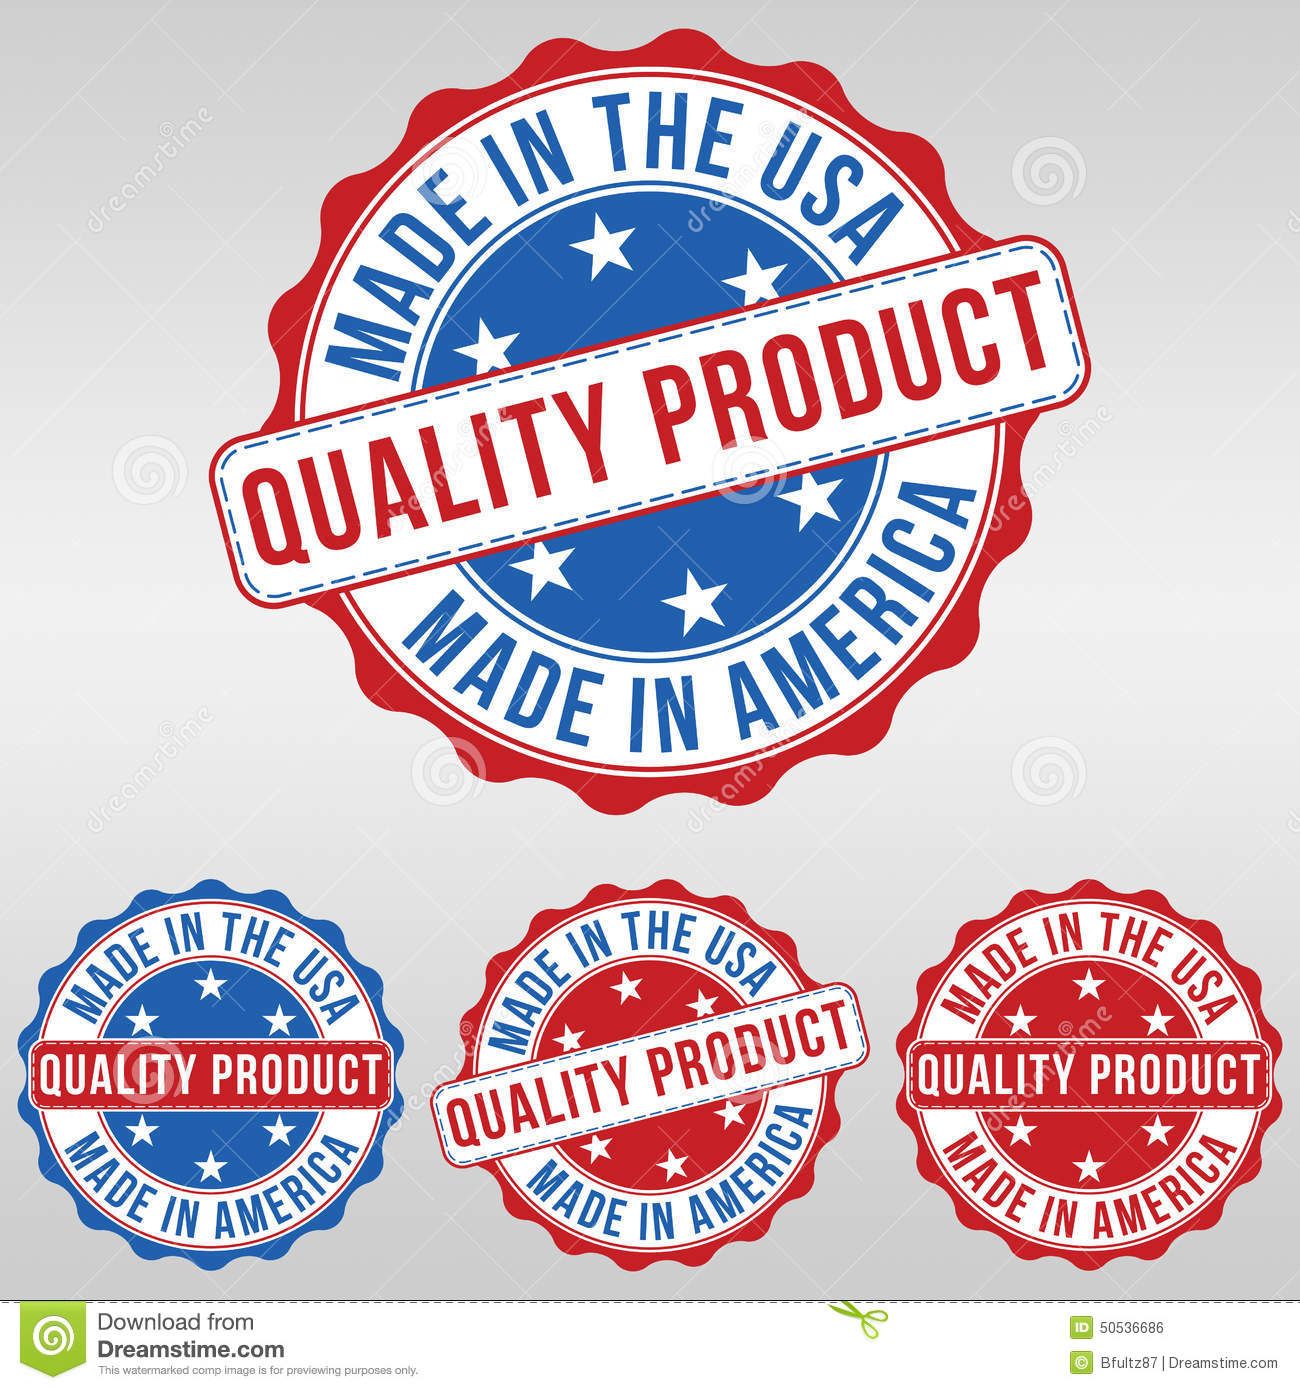 Made in the usa symbol stock vector image of sticker 50536724 made in america icons usa quality product stamp royalty free stock image buycottarizona